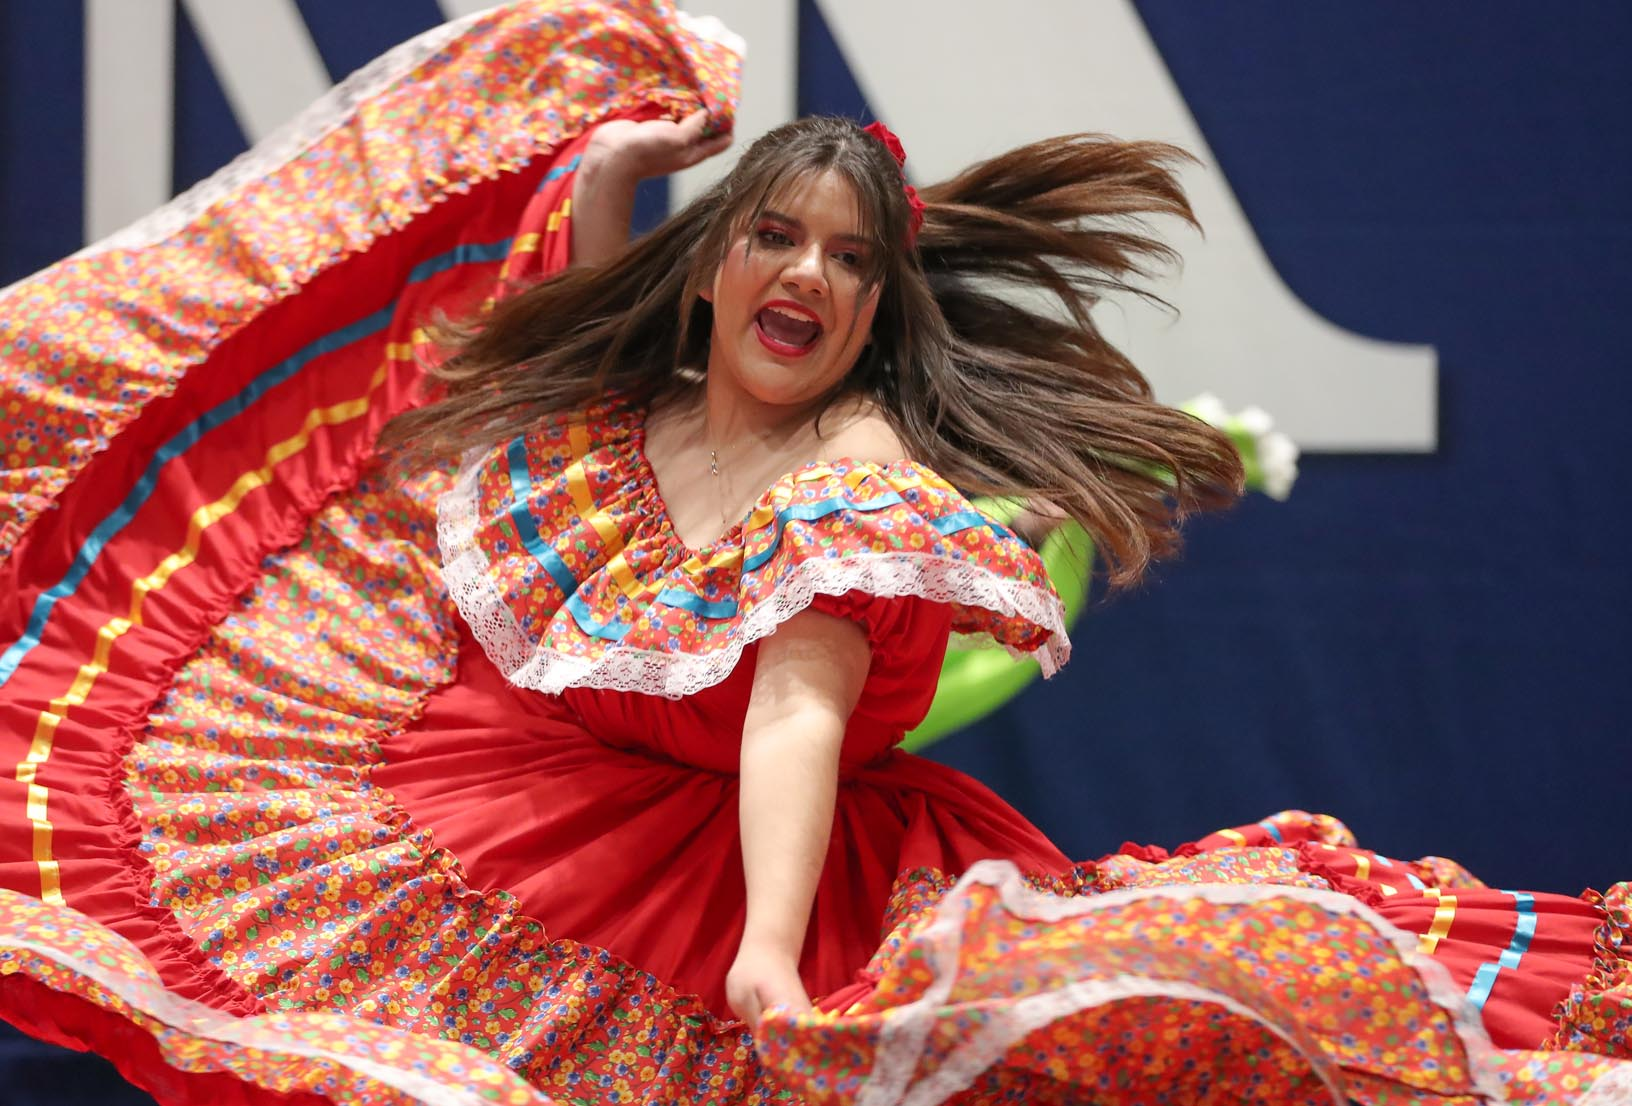 A member of UNK's Danza student organization performs Sunday during the Scott D. Morris International Food and Cultural Festival at UNK's Health and Sports Center. Part of UNK's Office of Student Diversity and Inclusion, Danza consists of students from Latin American countries who perform traditional dances.